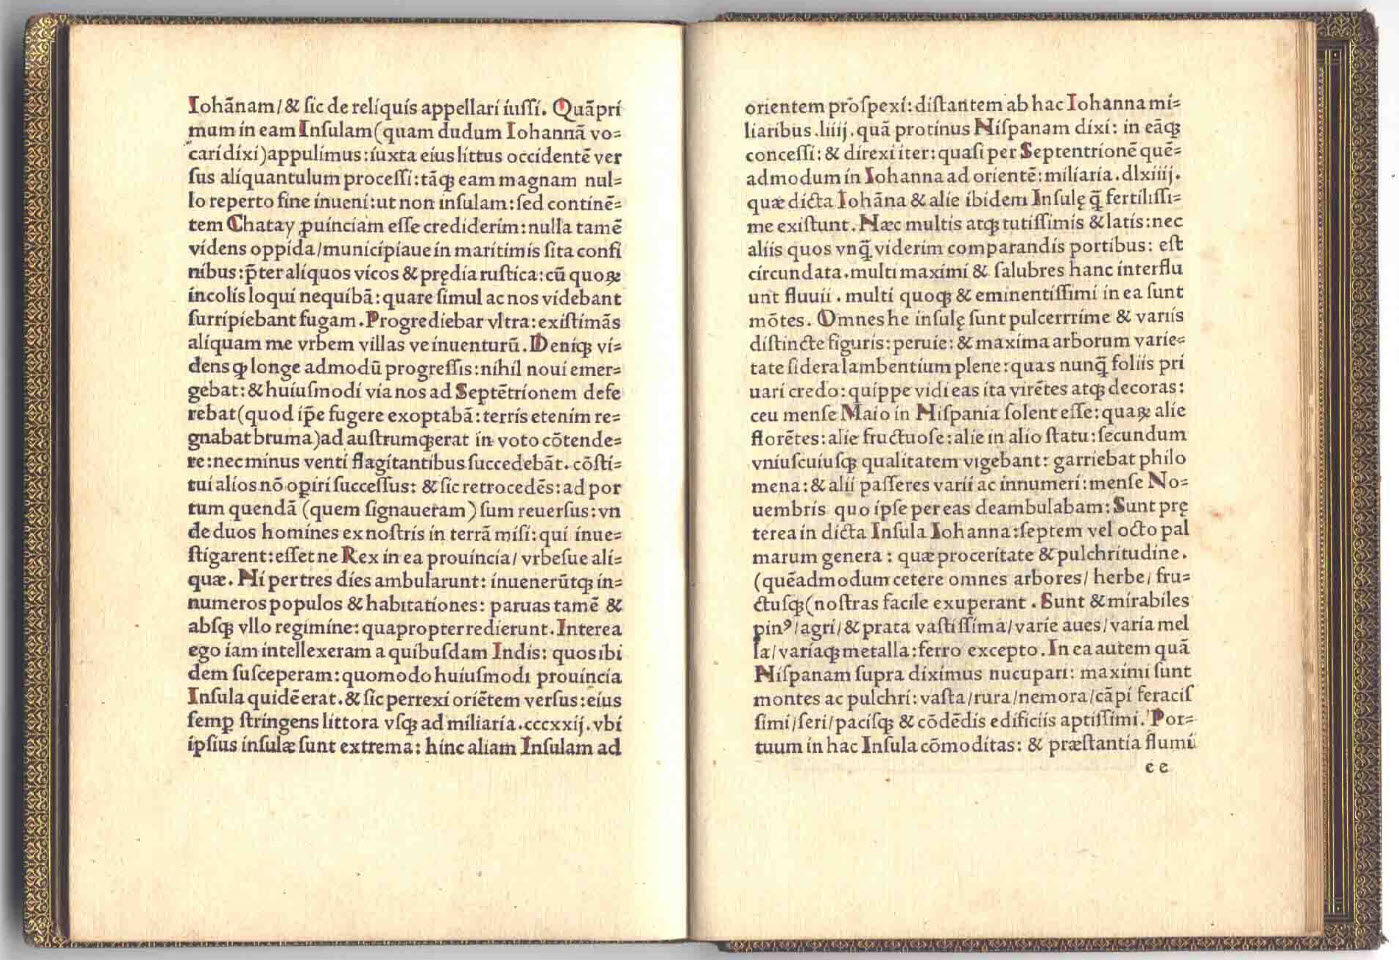 Christopher Columbus 1494 Book Letter Discovery America 10